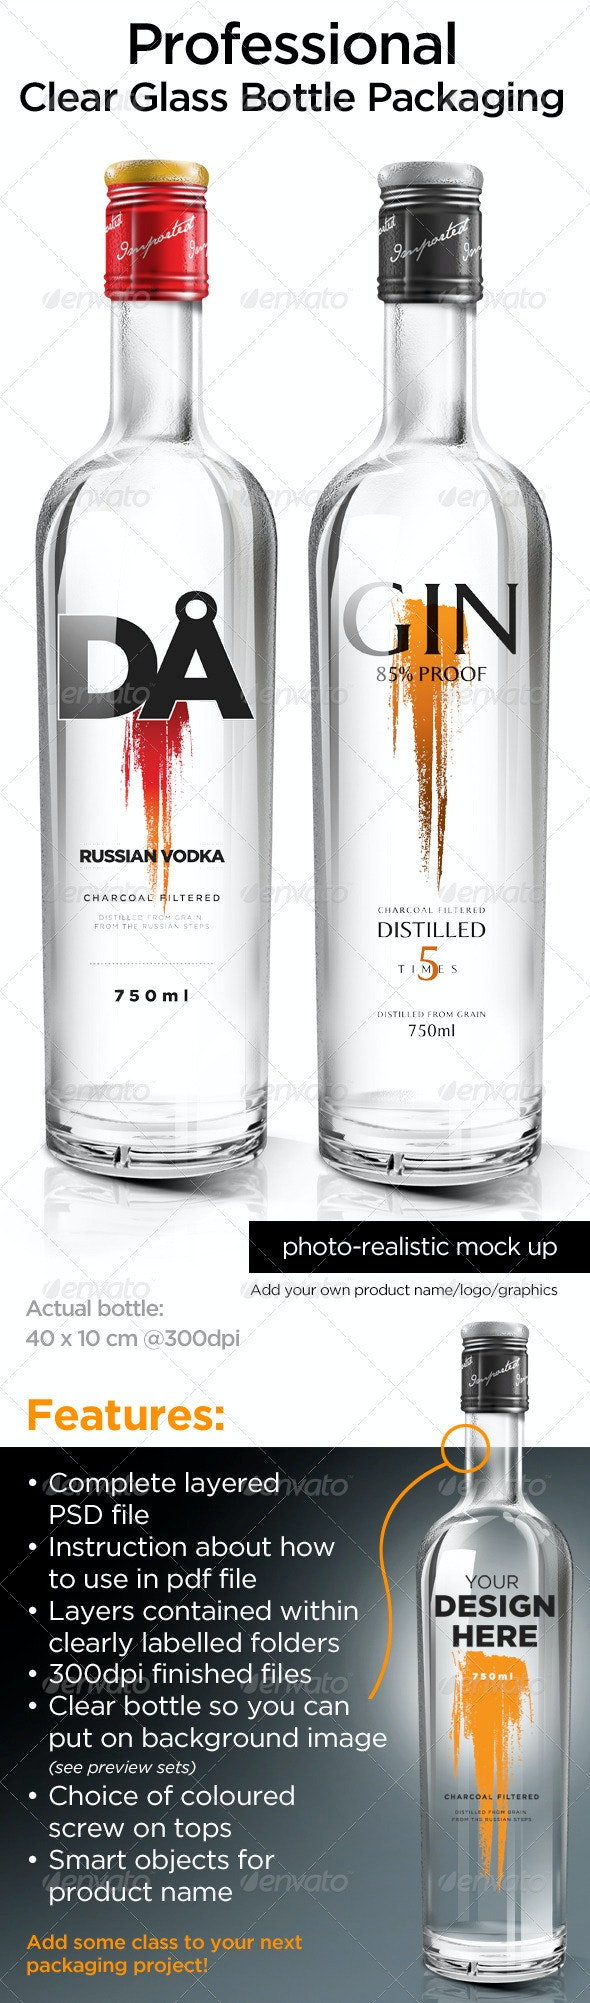 Clear Glass Bottle Packaging - Food and Drink Packaging